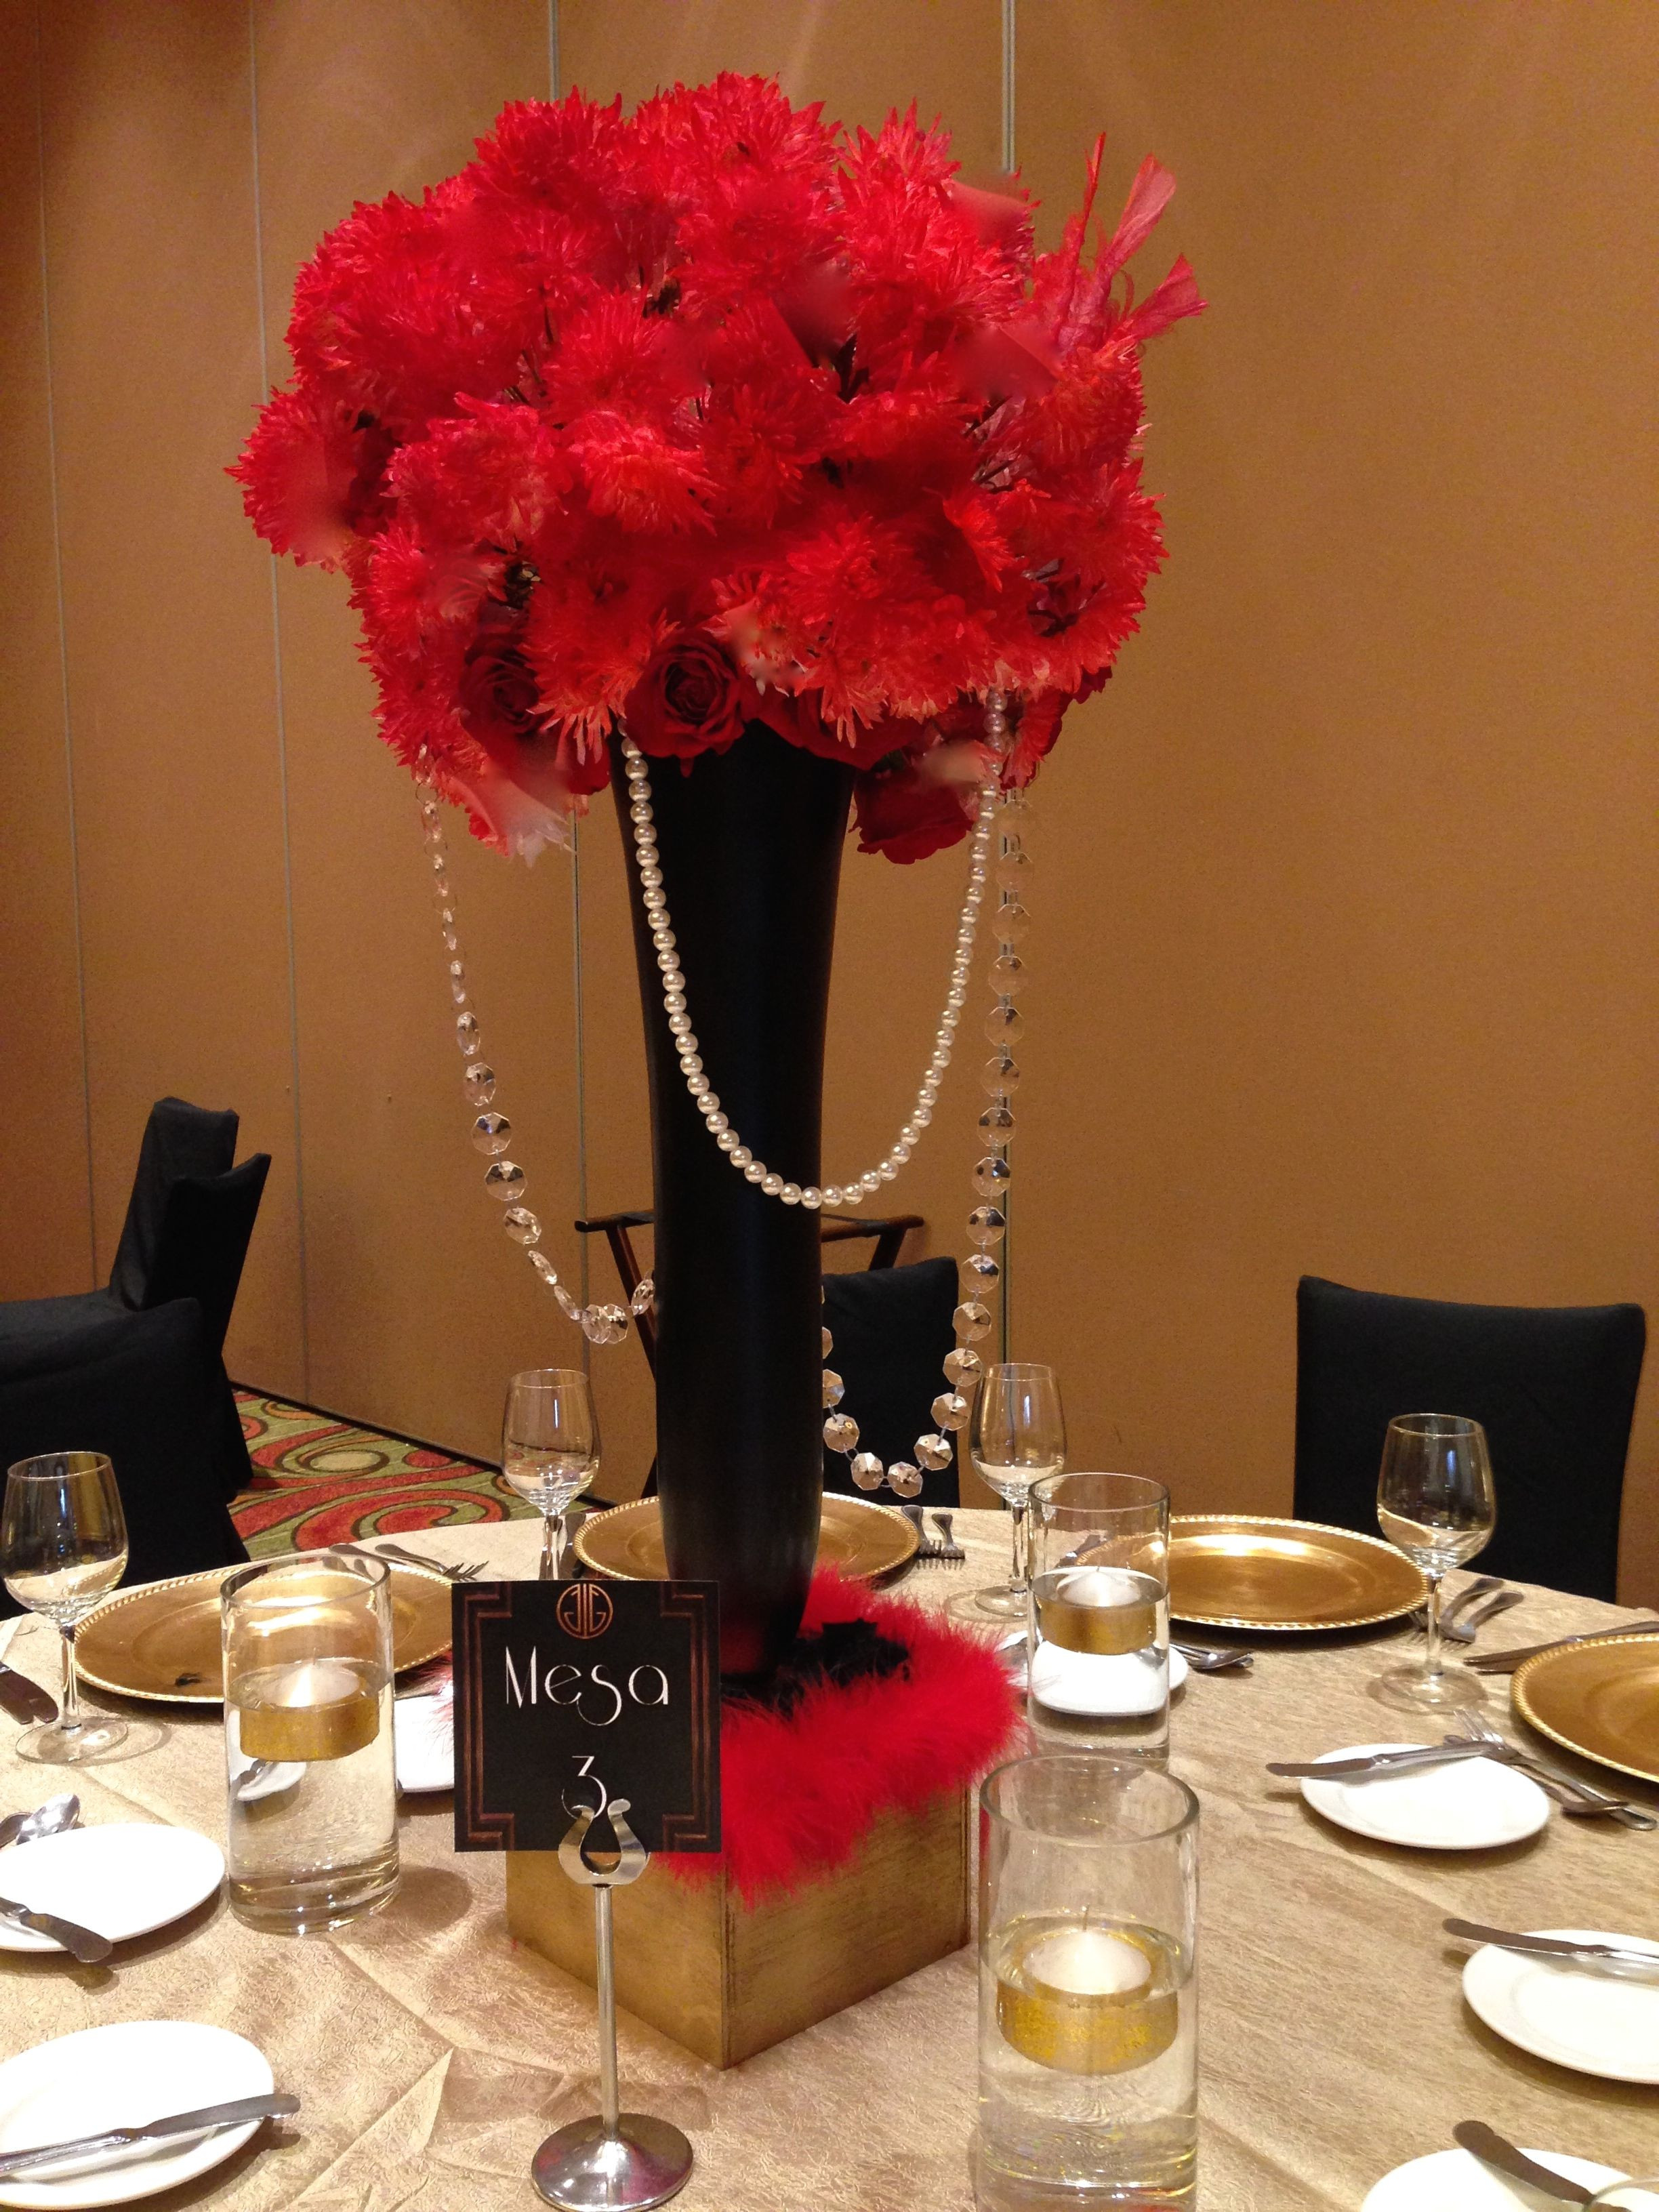 Tall Silver Vases for Wedding Centerpieces Of Tall Centerpiece Red Roses and Black Vases Great Gatsby theme Pertaining to Tall Centerpiece Red Roses and Black Vases Great Gatsby theme